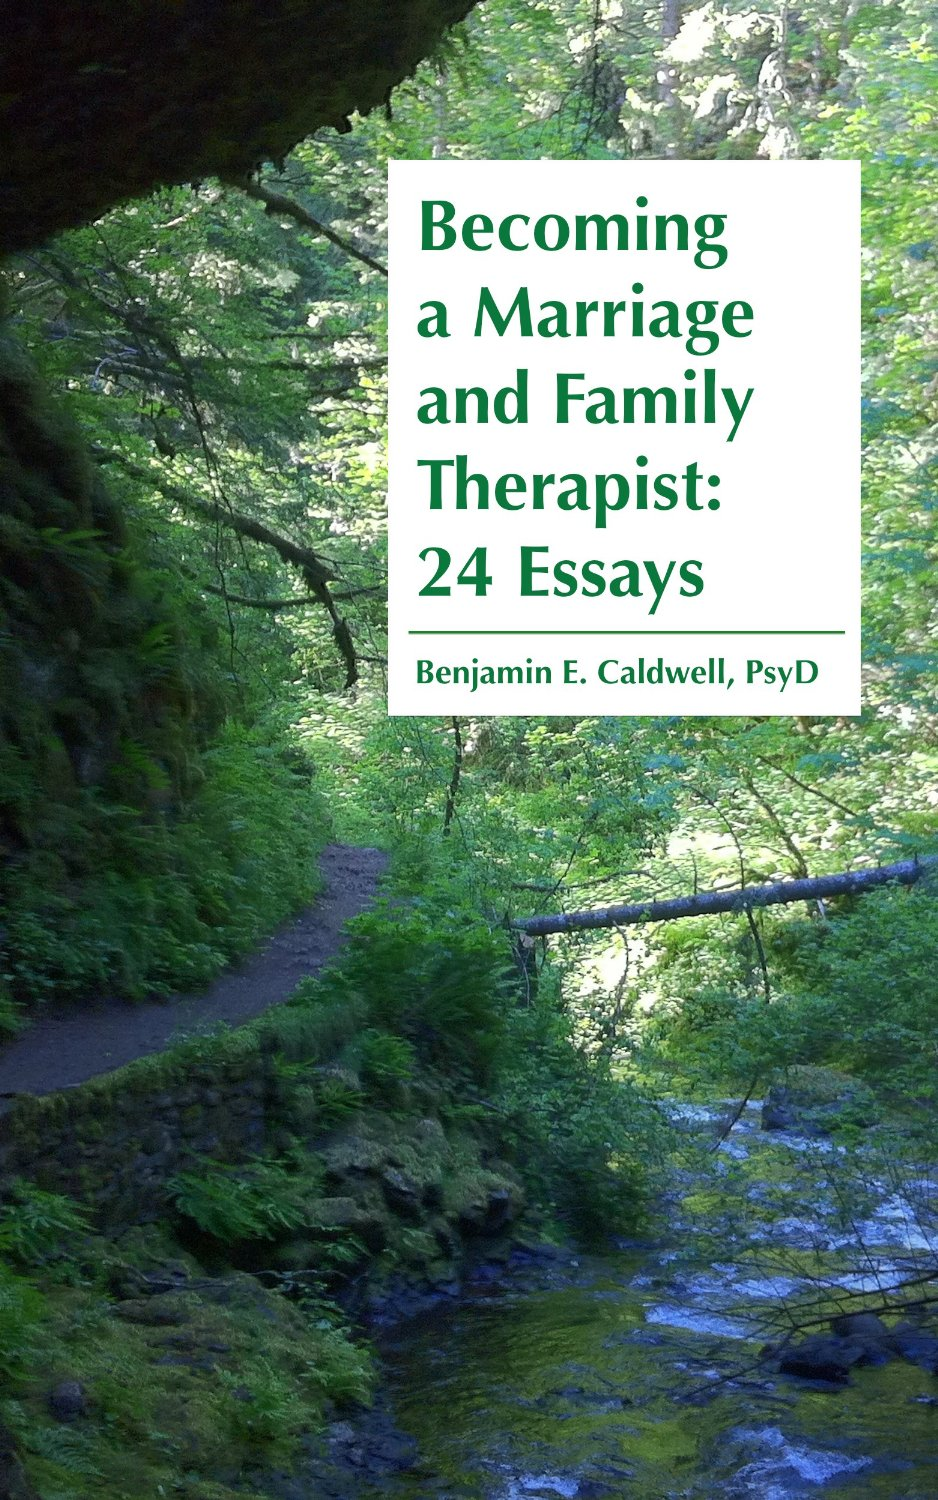 becoming a marriage and family therapist essays available now ldquobecoming a marriage and family therapist 24 essaysrdquo available now